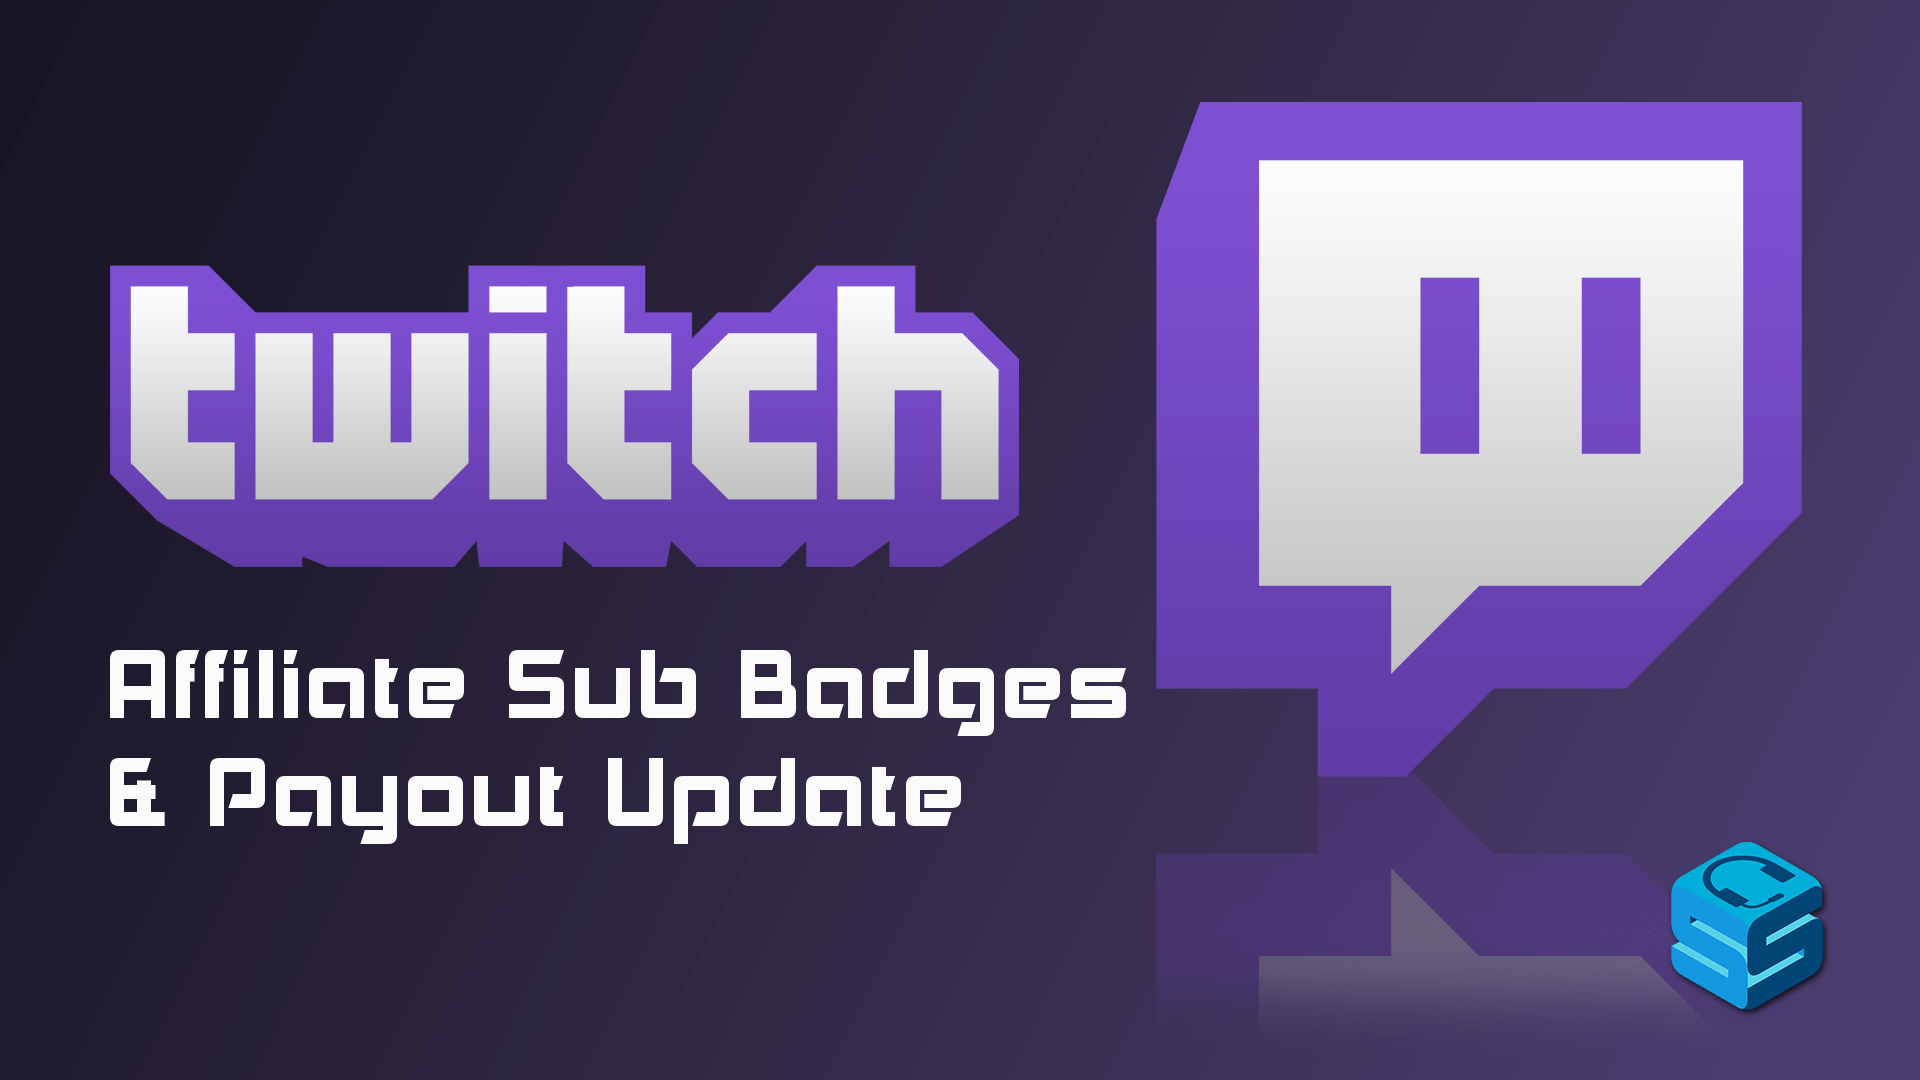 Twitch Updates Affiliate Sub Badges and Payout Period